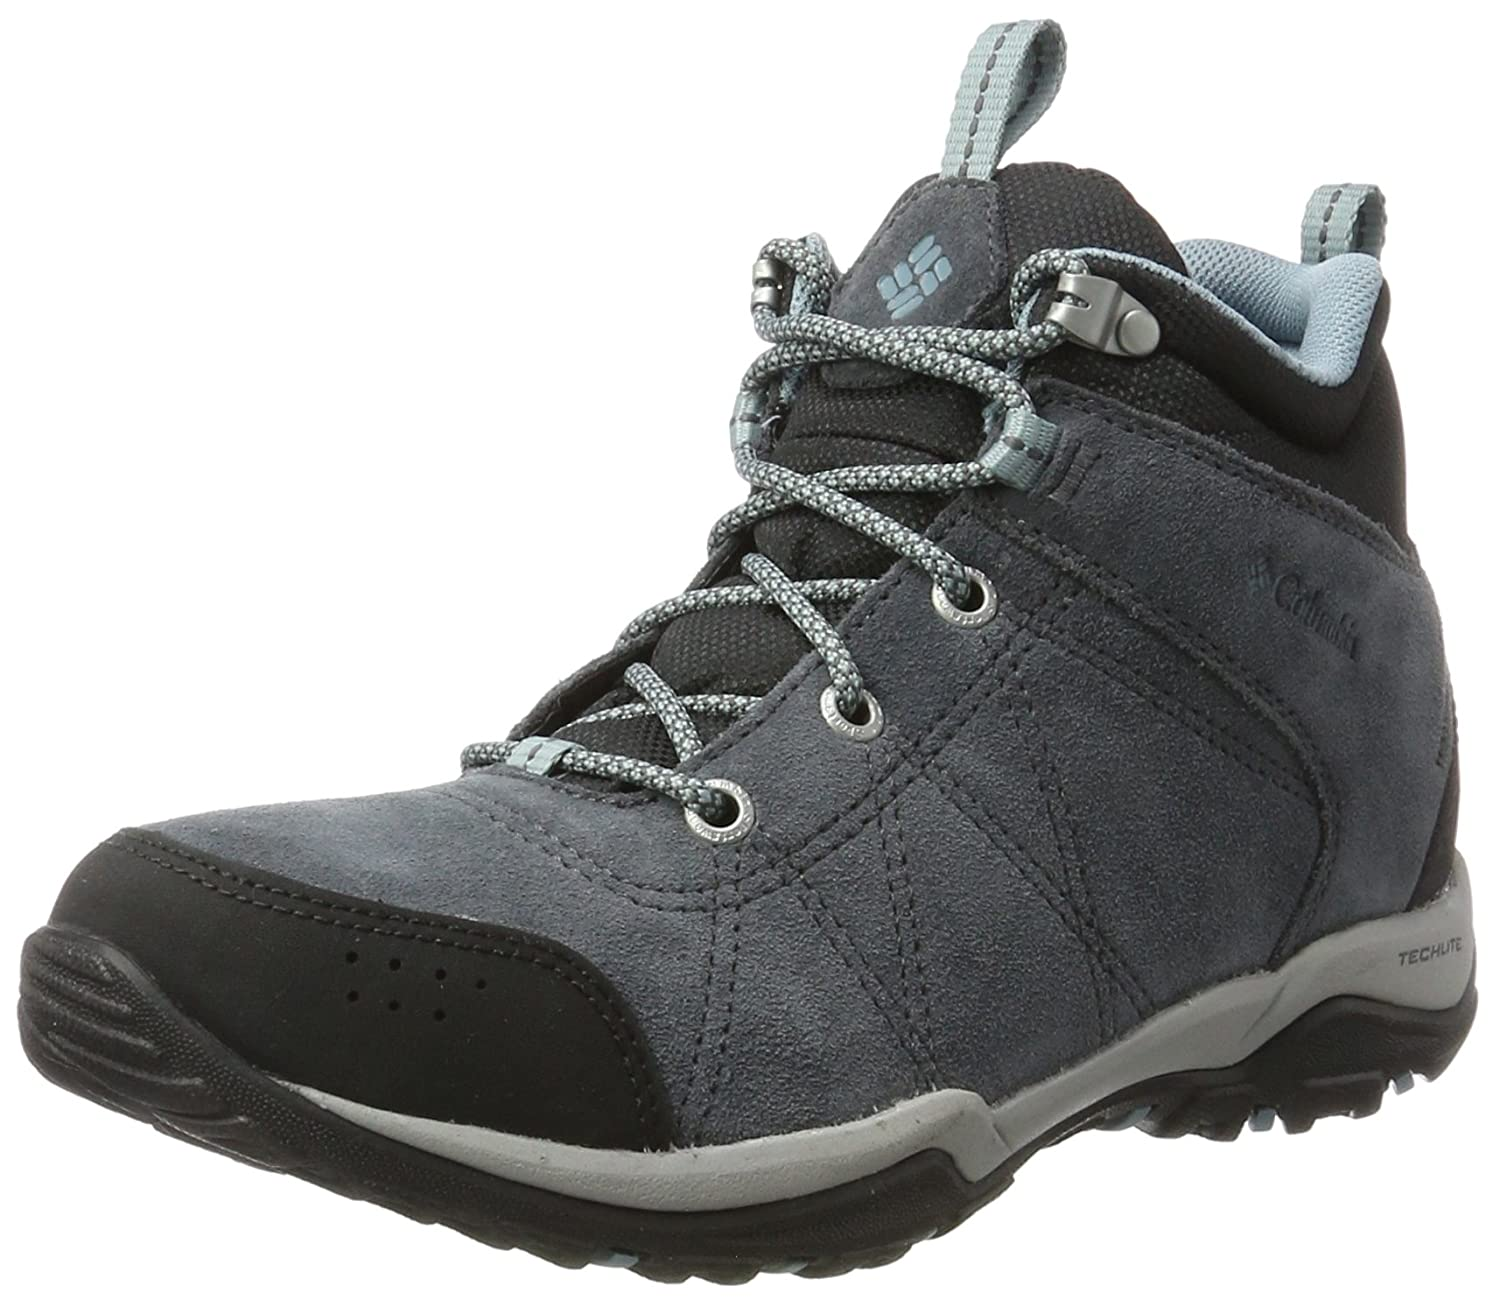 Columbia Women's Fire Venture Mid Waterproof Hiking Boot 1701841